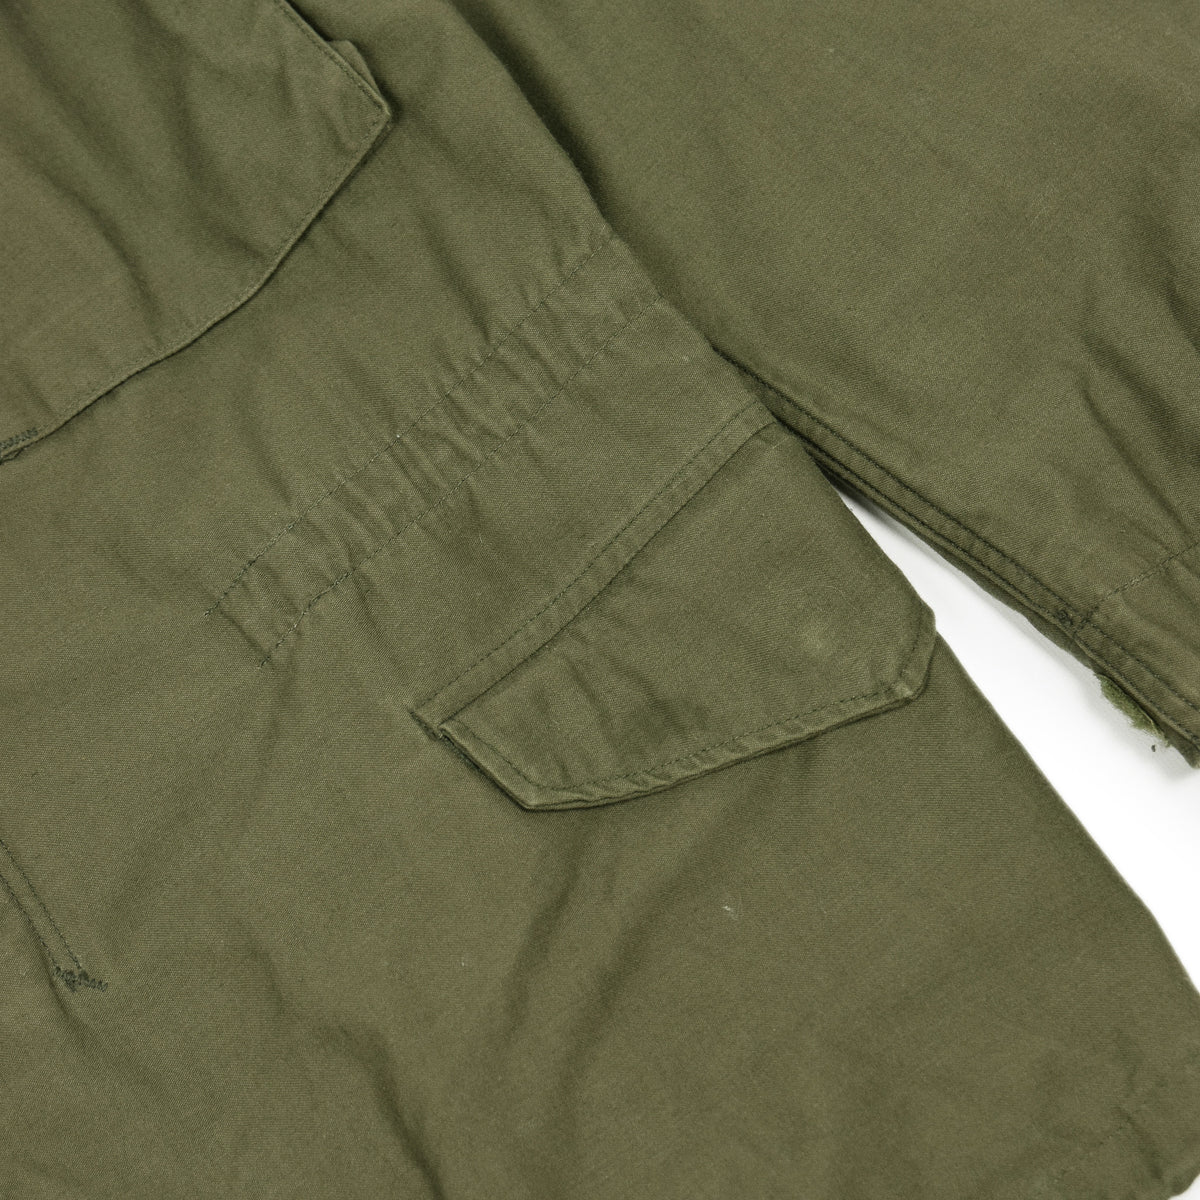 Vintage 80s M-65 Man's Field Cotton Sateen 0G-107 Green US Army Coat M lower pocket